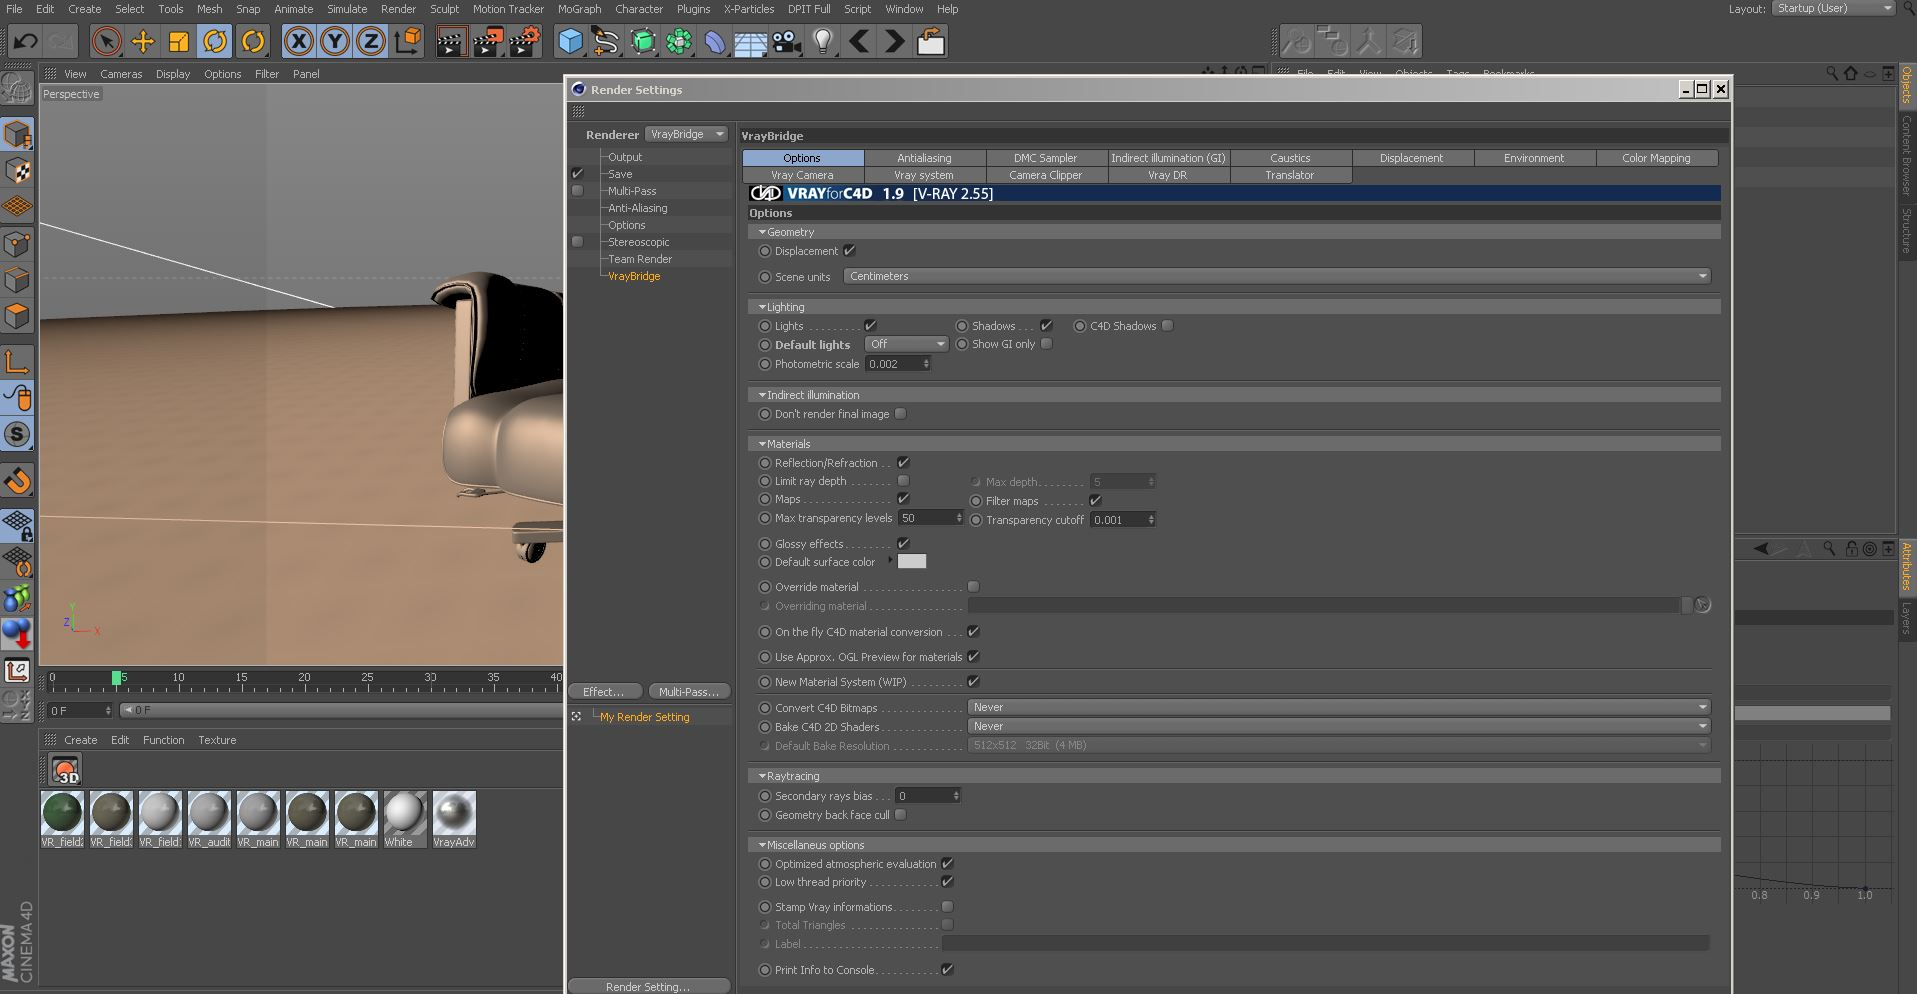 Cinema 4d vray bridge / Hp 6500 e709 series software